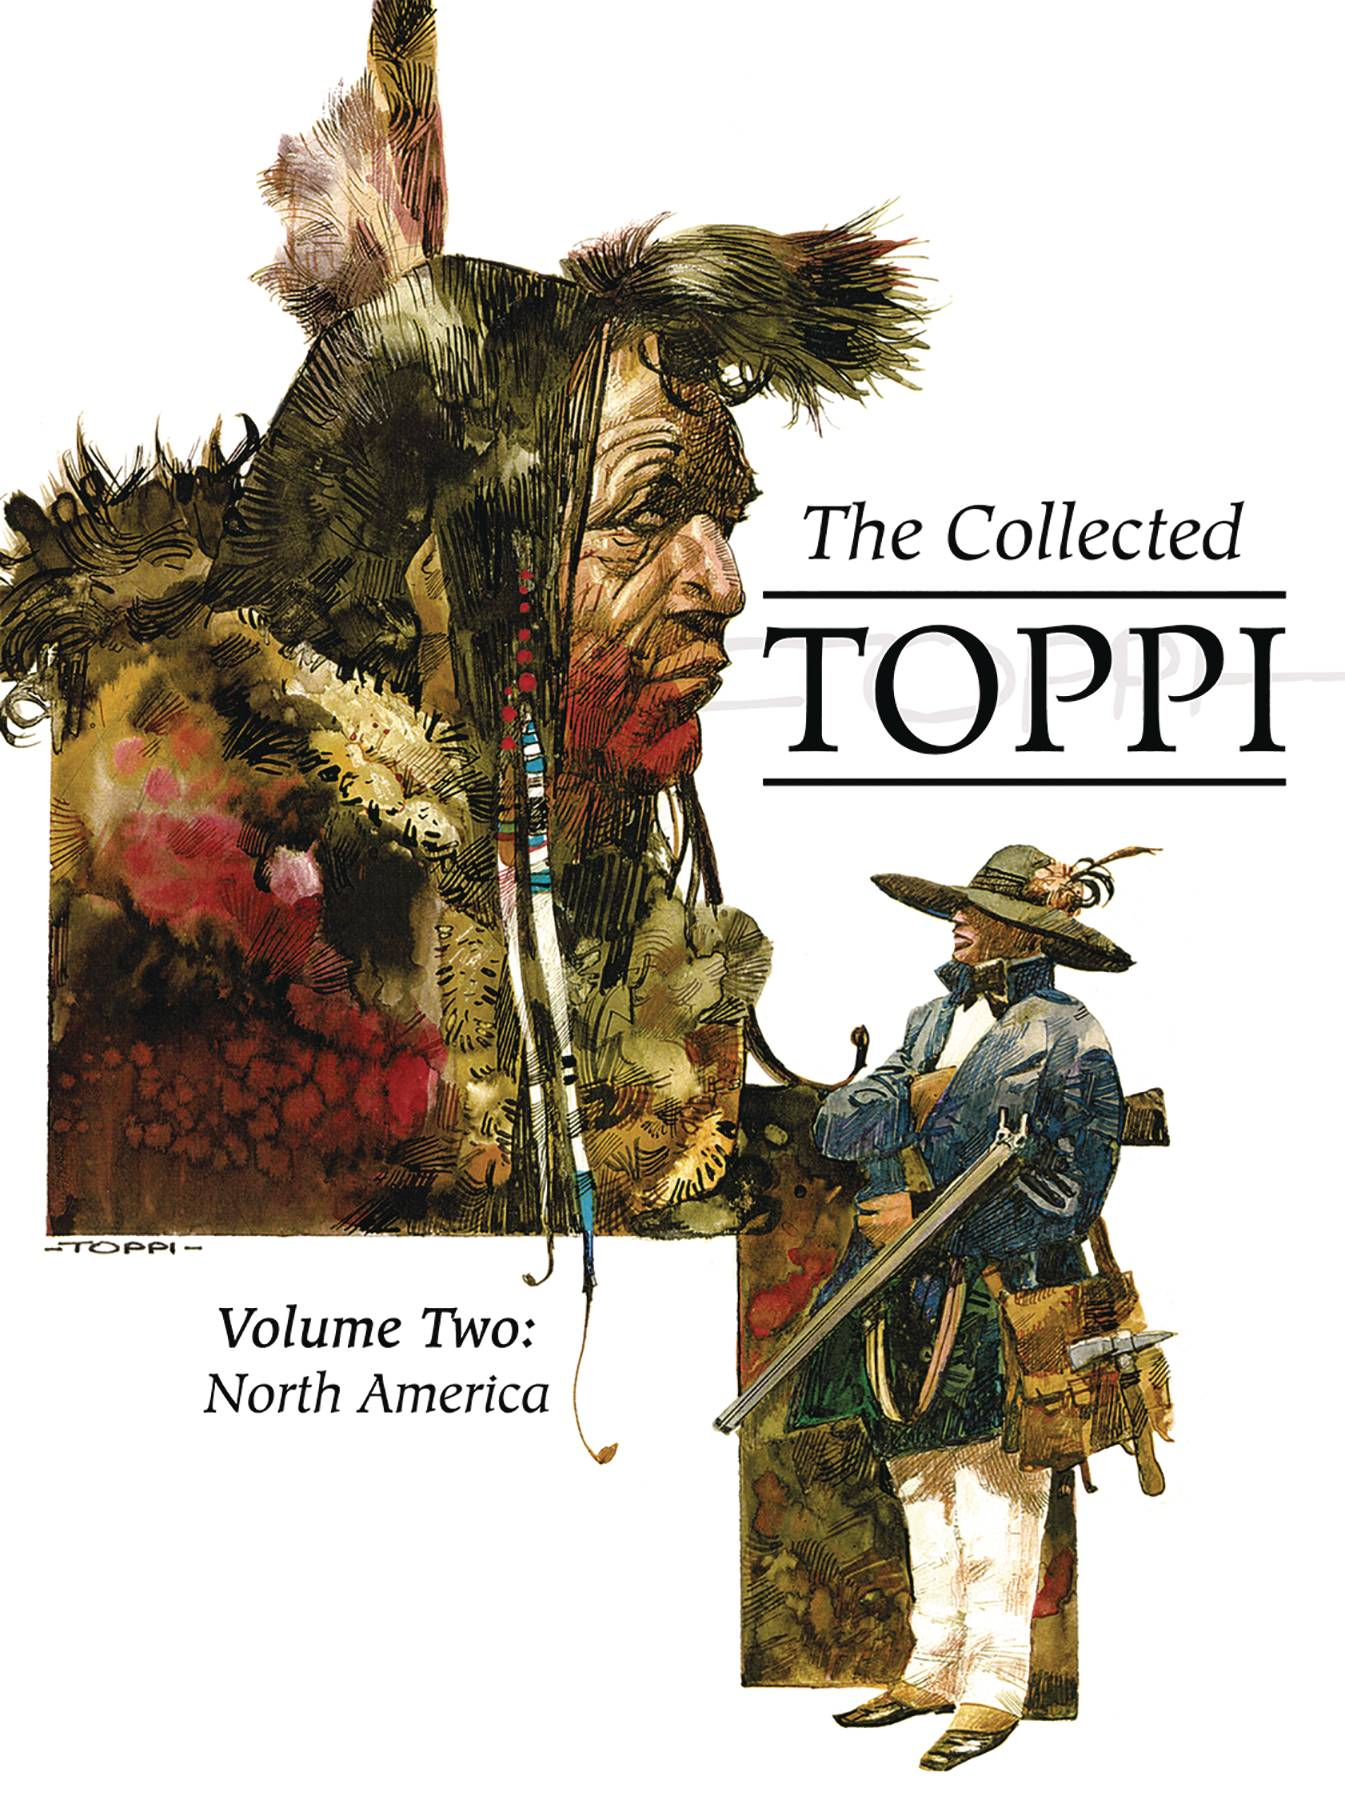 COLLECTED TOPPI HC 2 ENCHANTED WORLD.jpg